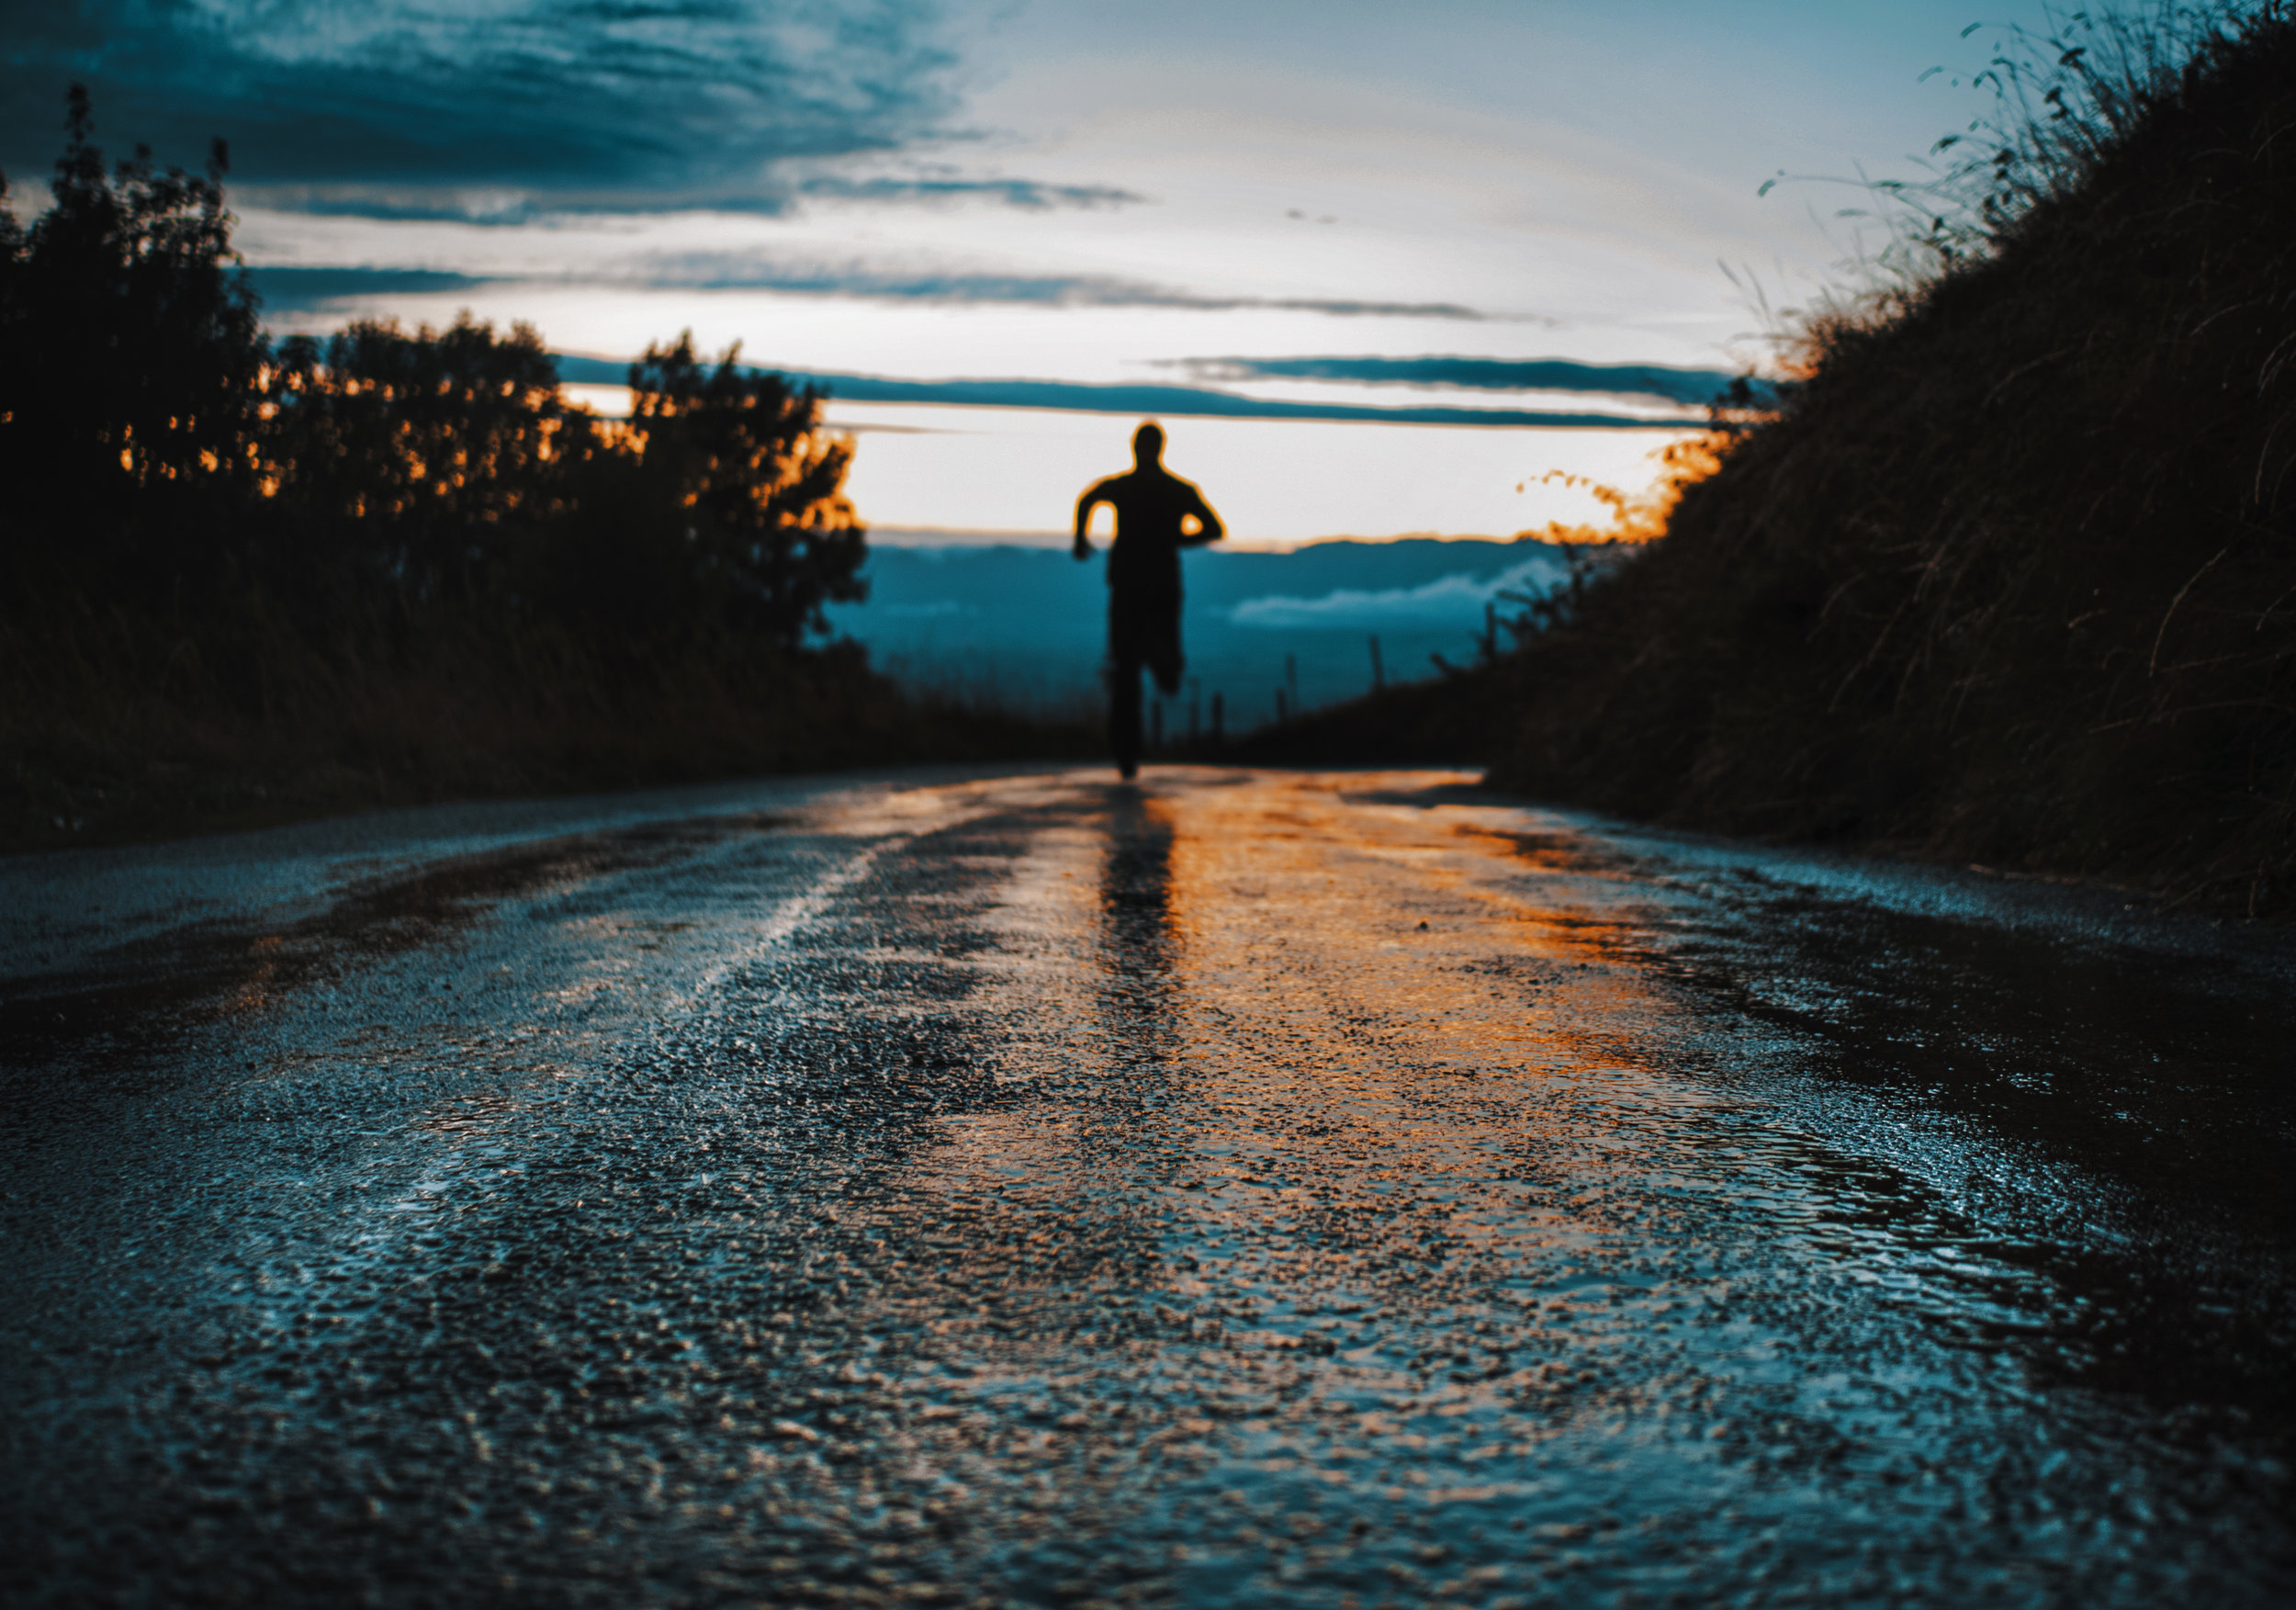 Intermediate 5k Plan - 7 weeks, starts July 29 - This plan is geared towards those who have run a few 5k's and/or have been running at regular intervals already. There is a lot of variety so take what works for you and skip what doesn't. When running the different paces - i.e. jog, easy, moderate, fast, sprint - it is based more off how you feel. If at any point you find yourself in pain, please stop or take a break - injuries aren't worth it in the long run! If you have any questions, please ask!Looking forward to seeing you on race day!